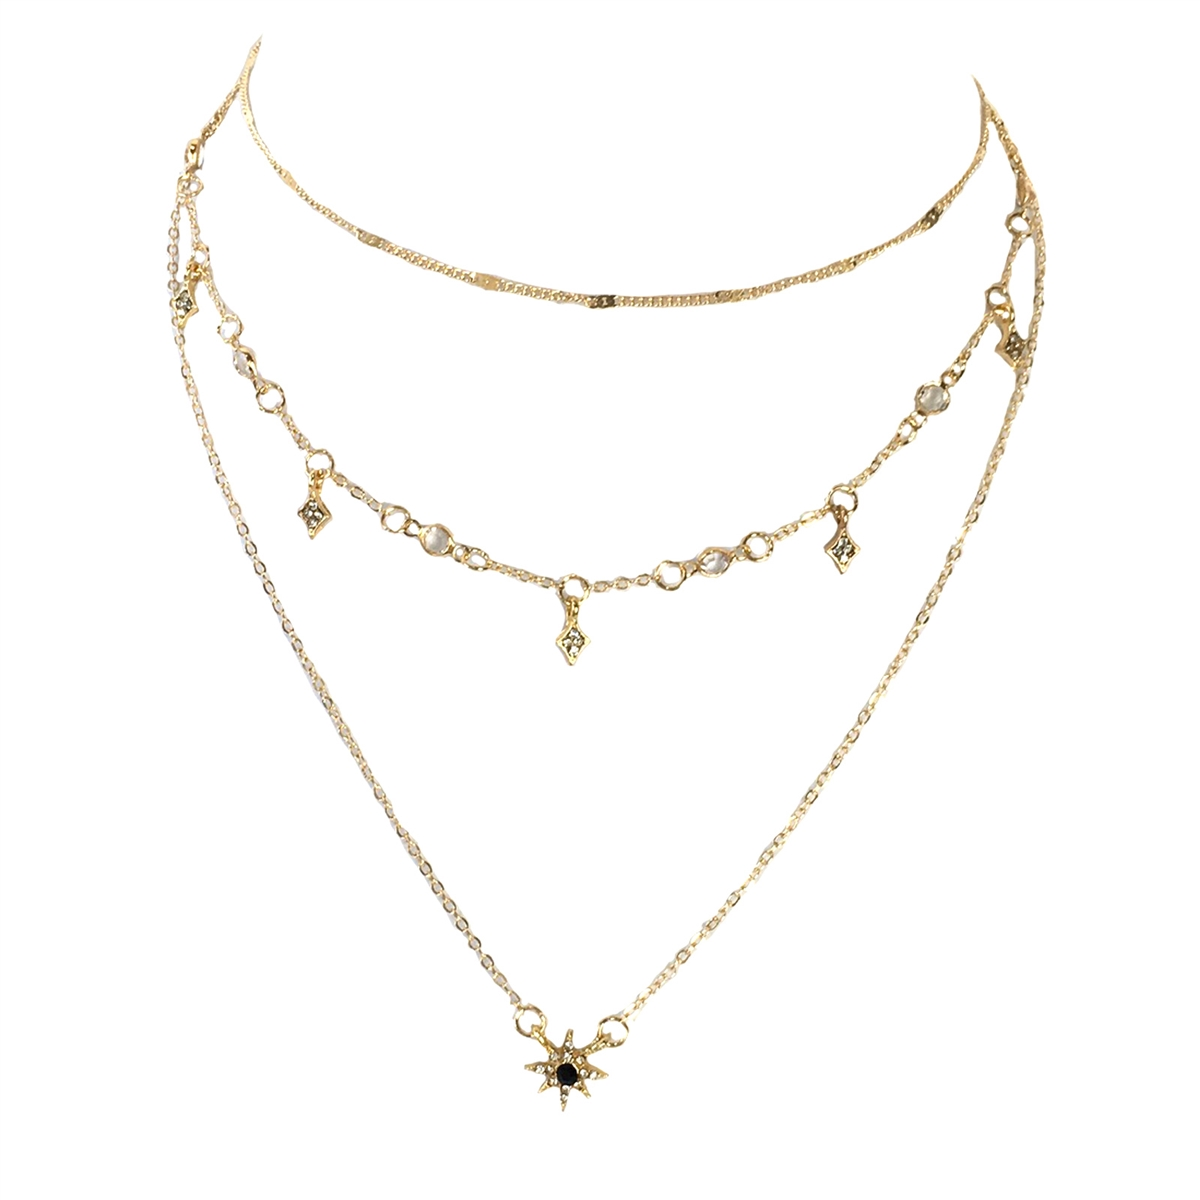 e8791e3d65f85 Jewelry Collection Pave Starburst 3 Line Layer Necklace, Gold